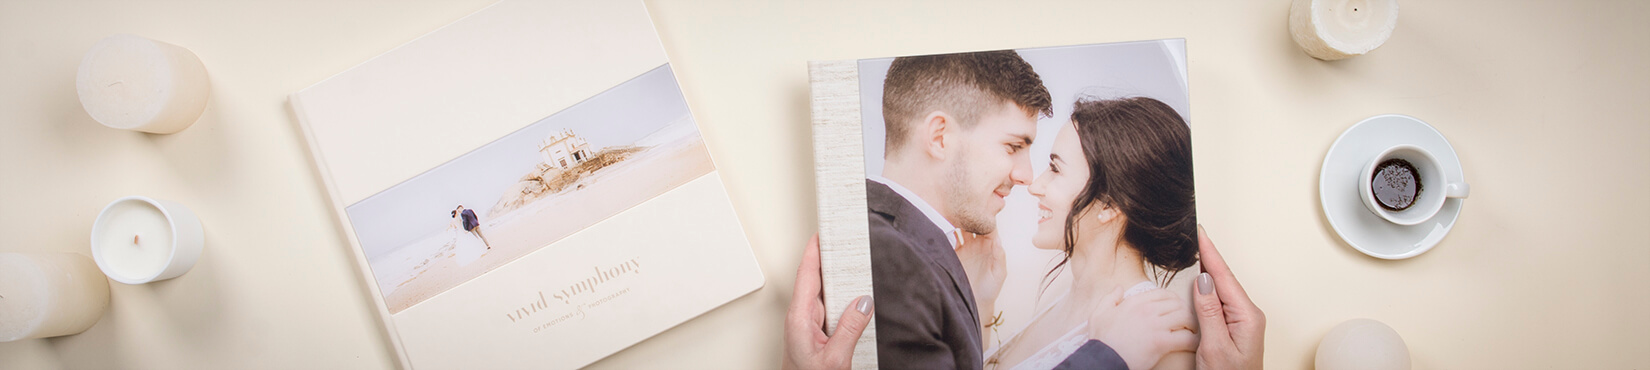 Acrylic Photo album Lay flat professional nphoto 5.jpg